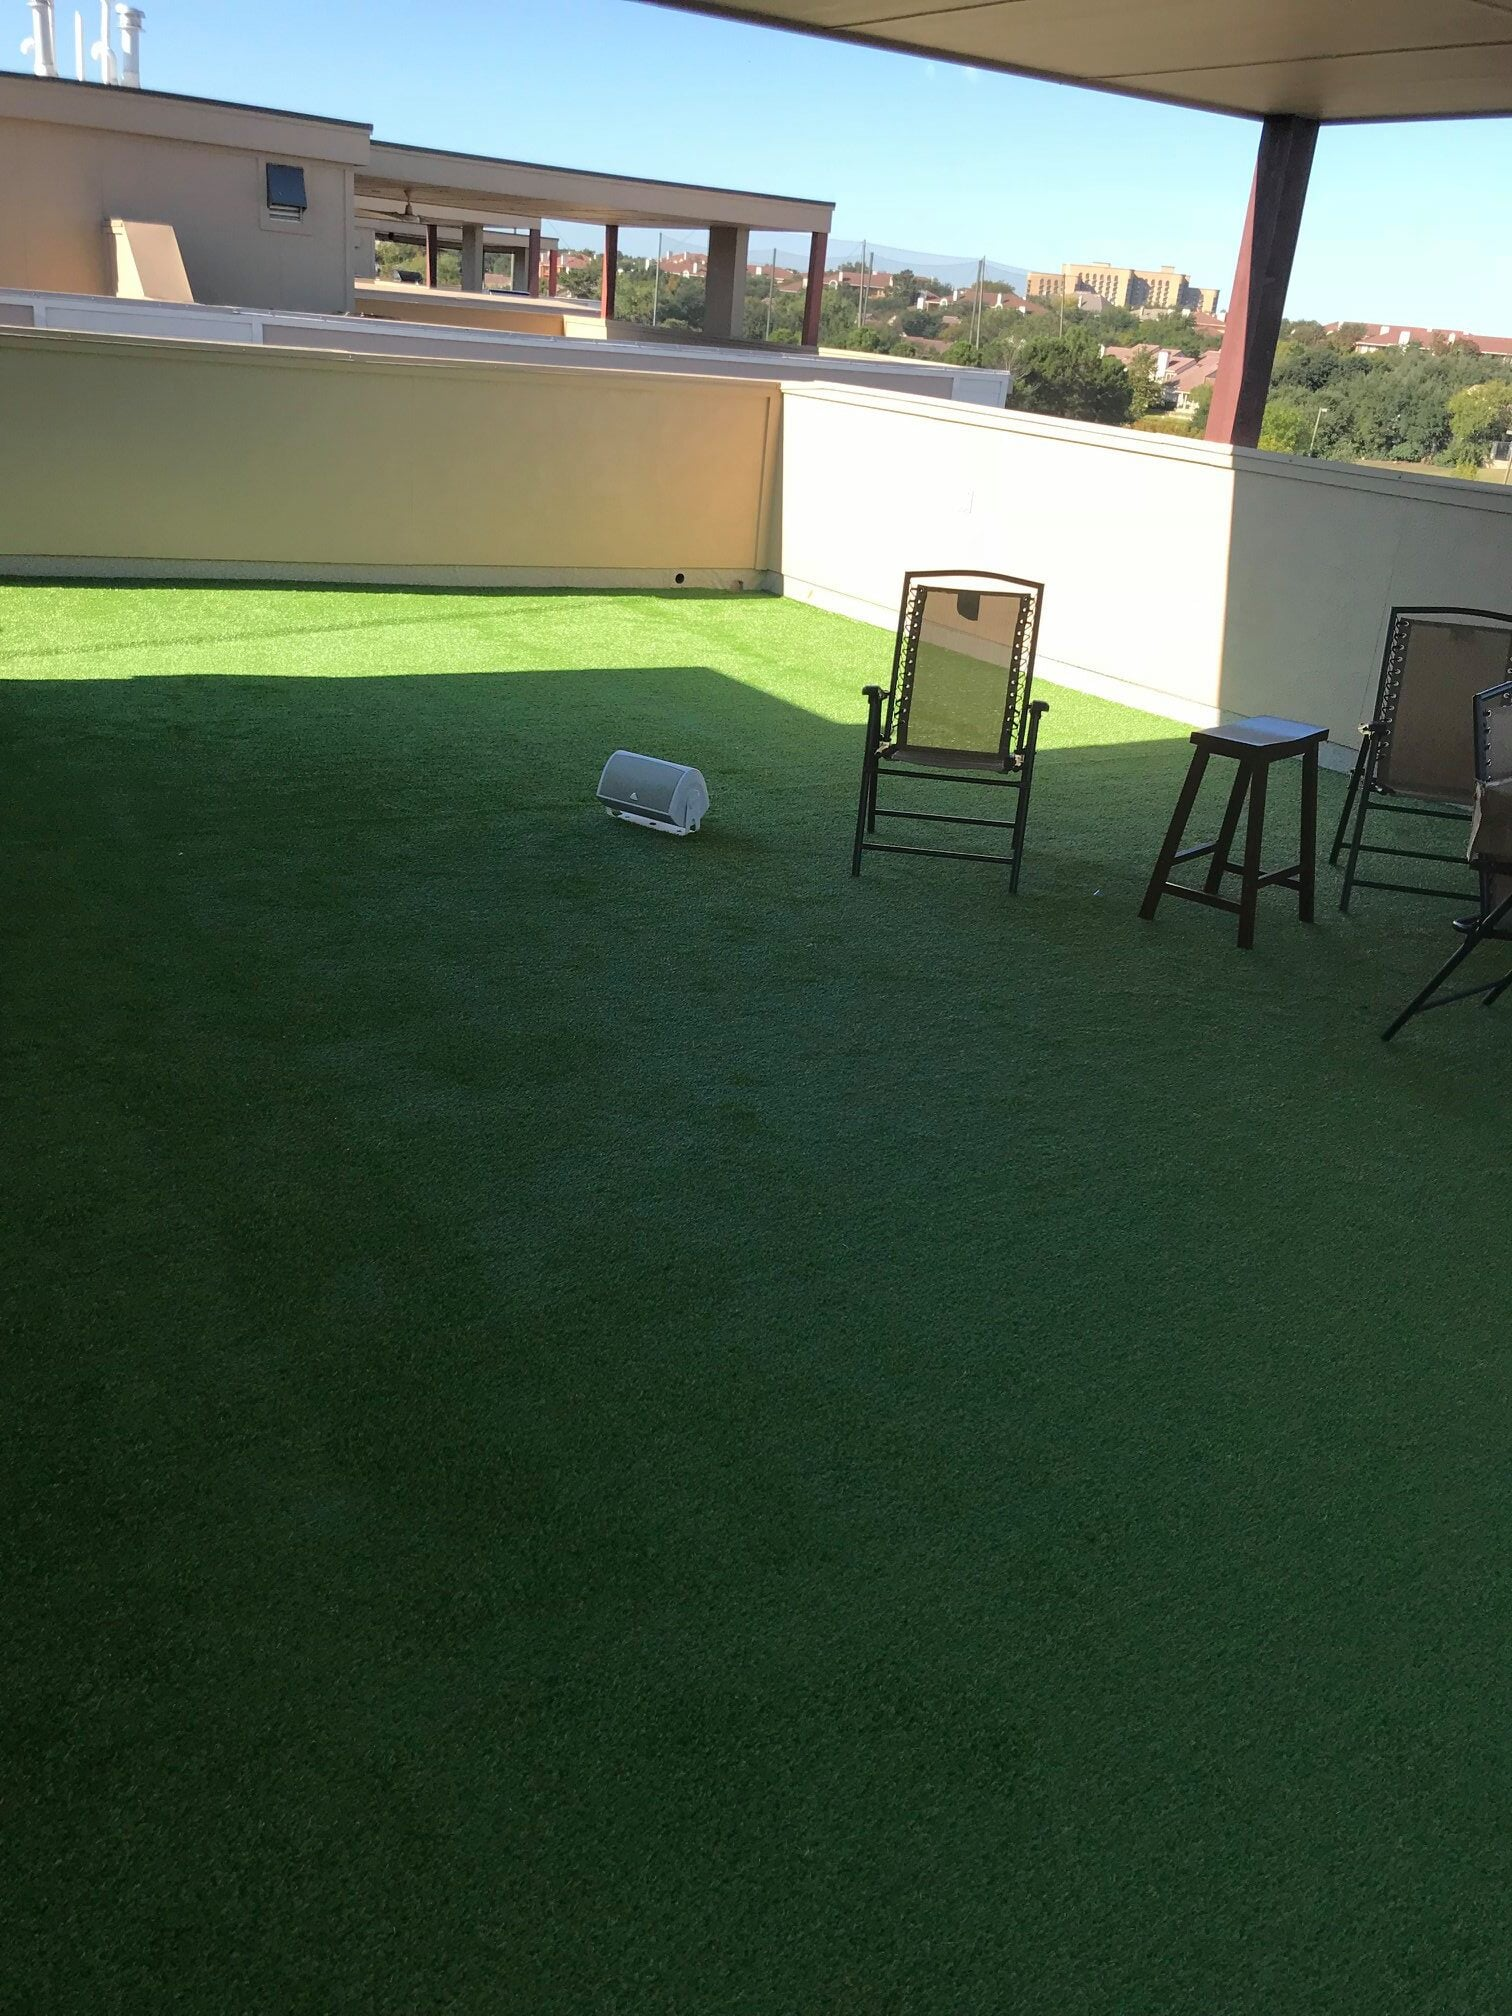 Outdoor flooring from StarFloors in Allen, TX